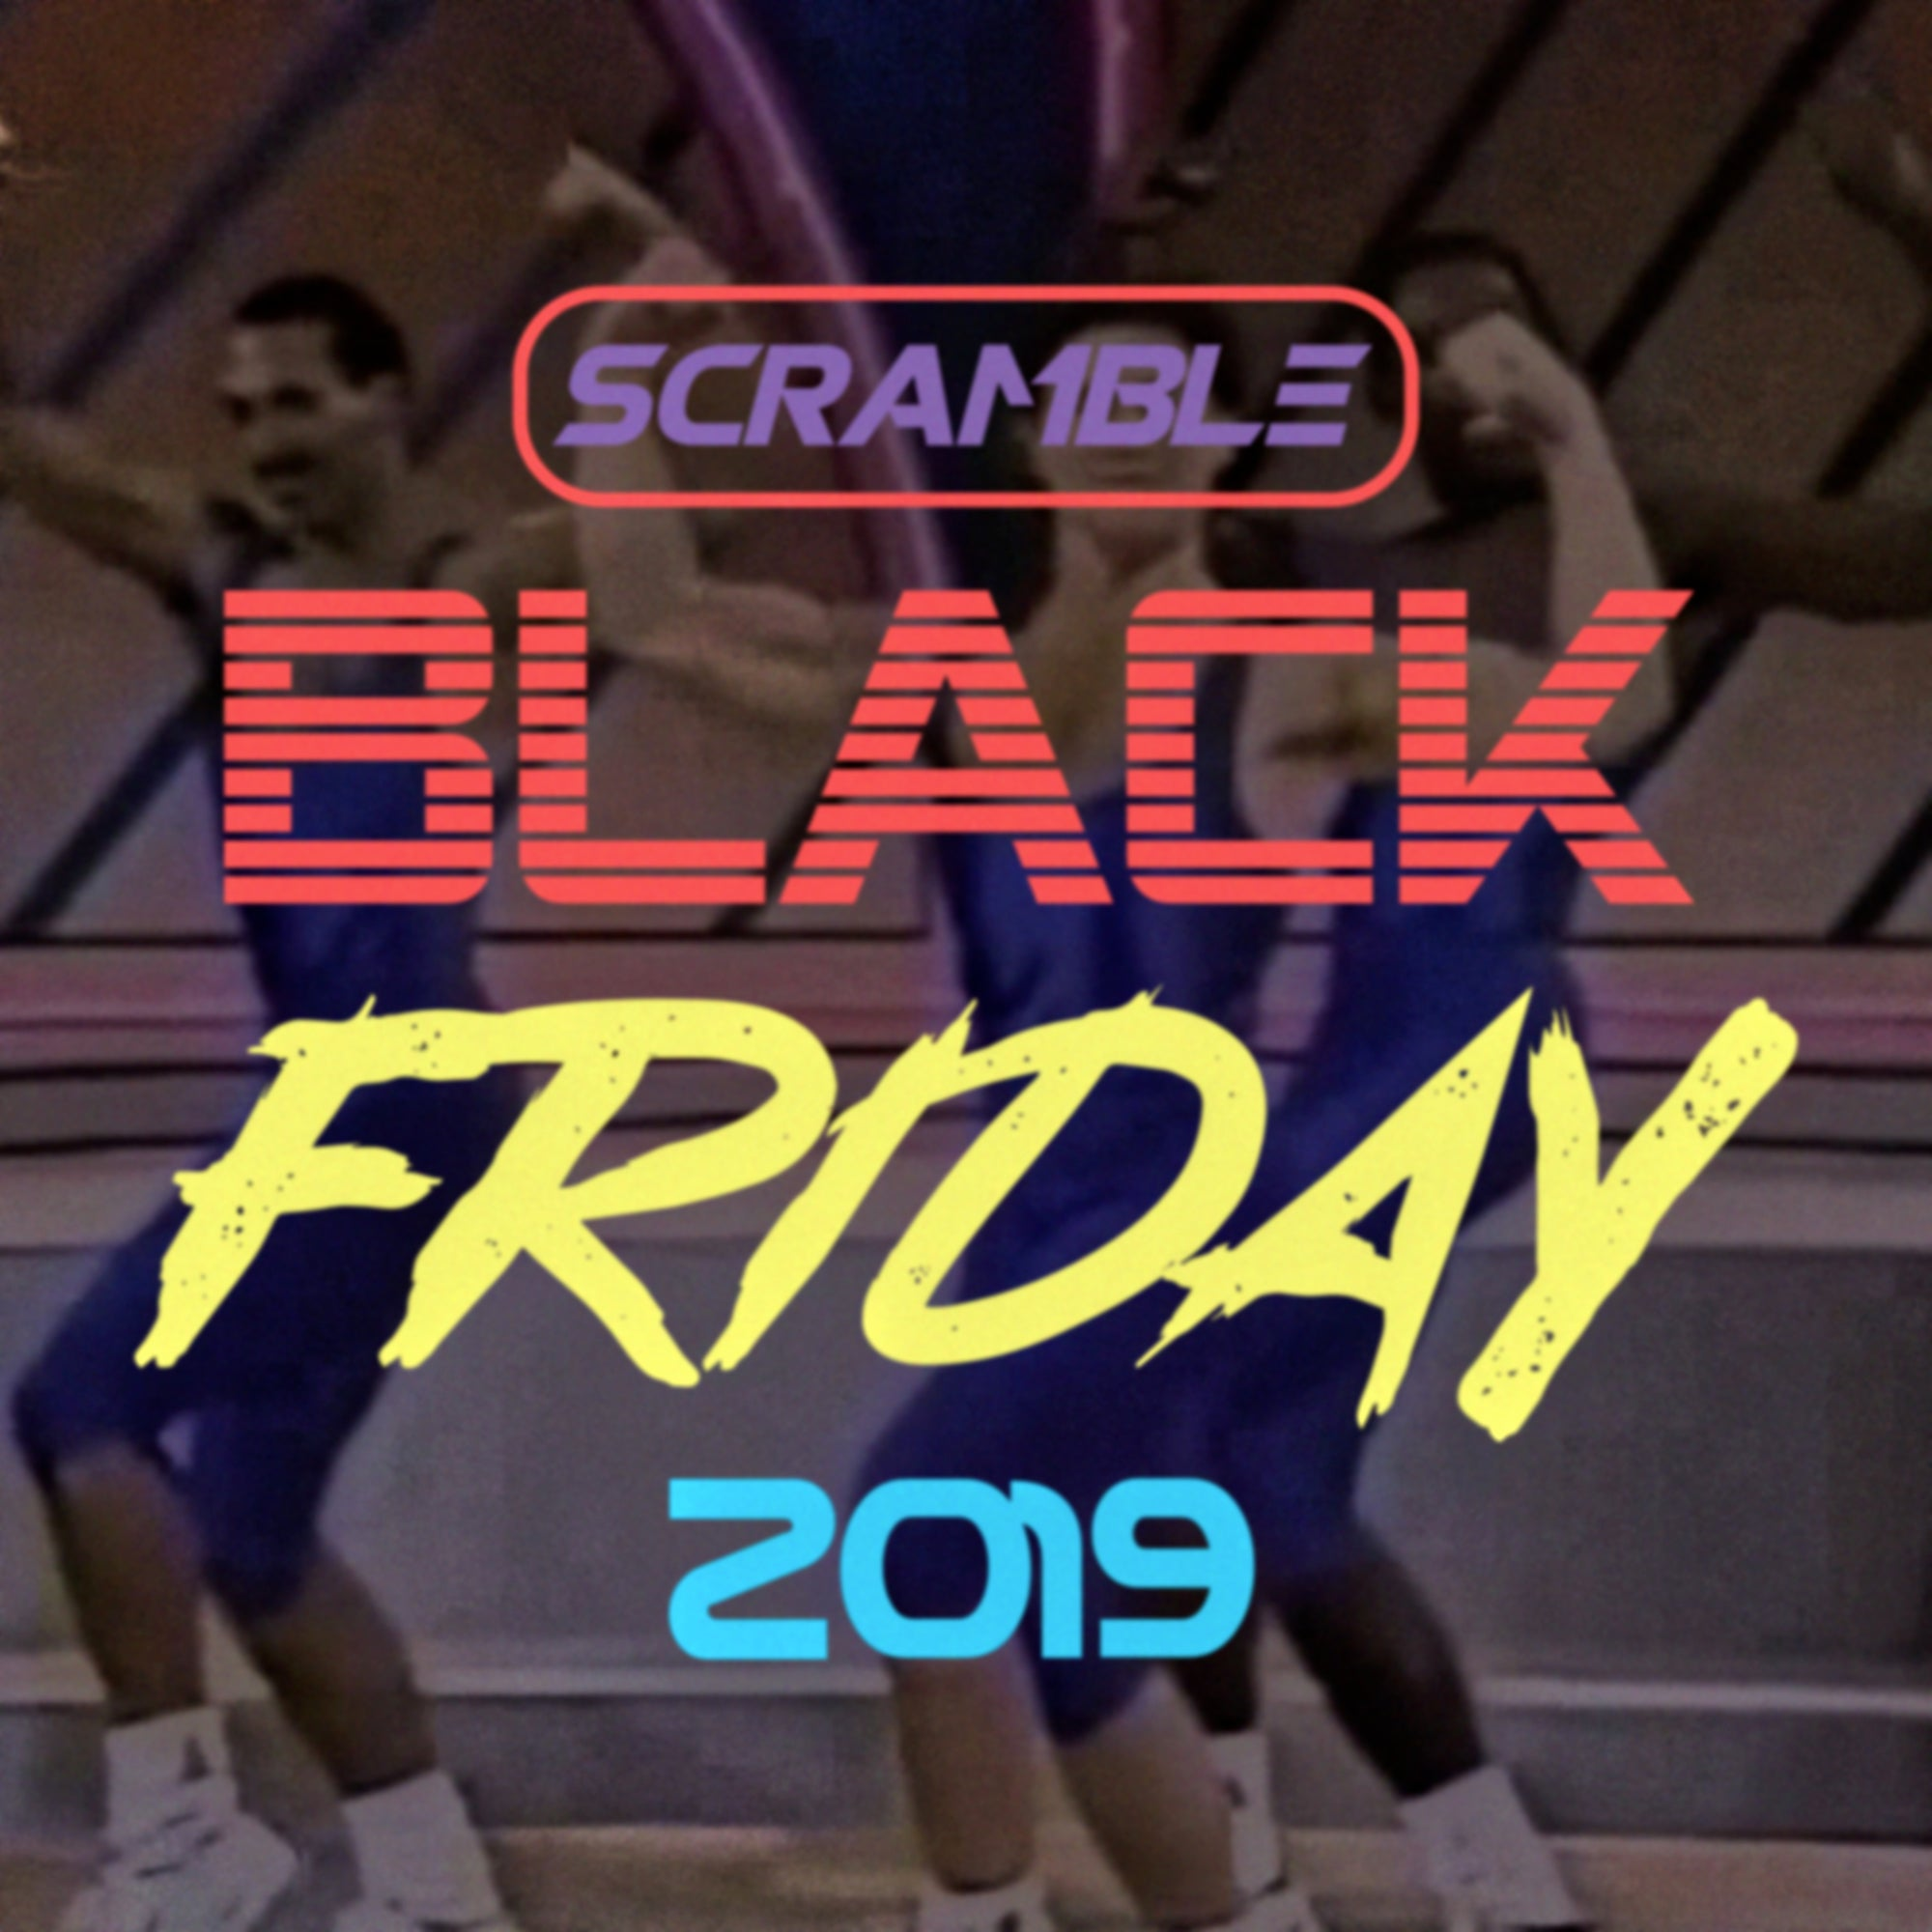 SCRAMBLE BLACK FRIDAY 2019 – DEALS TO WATCH OUT FOR